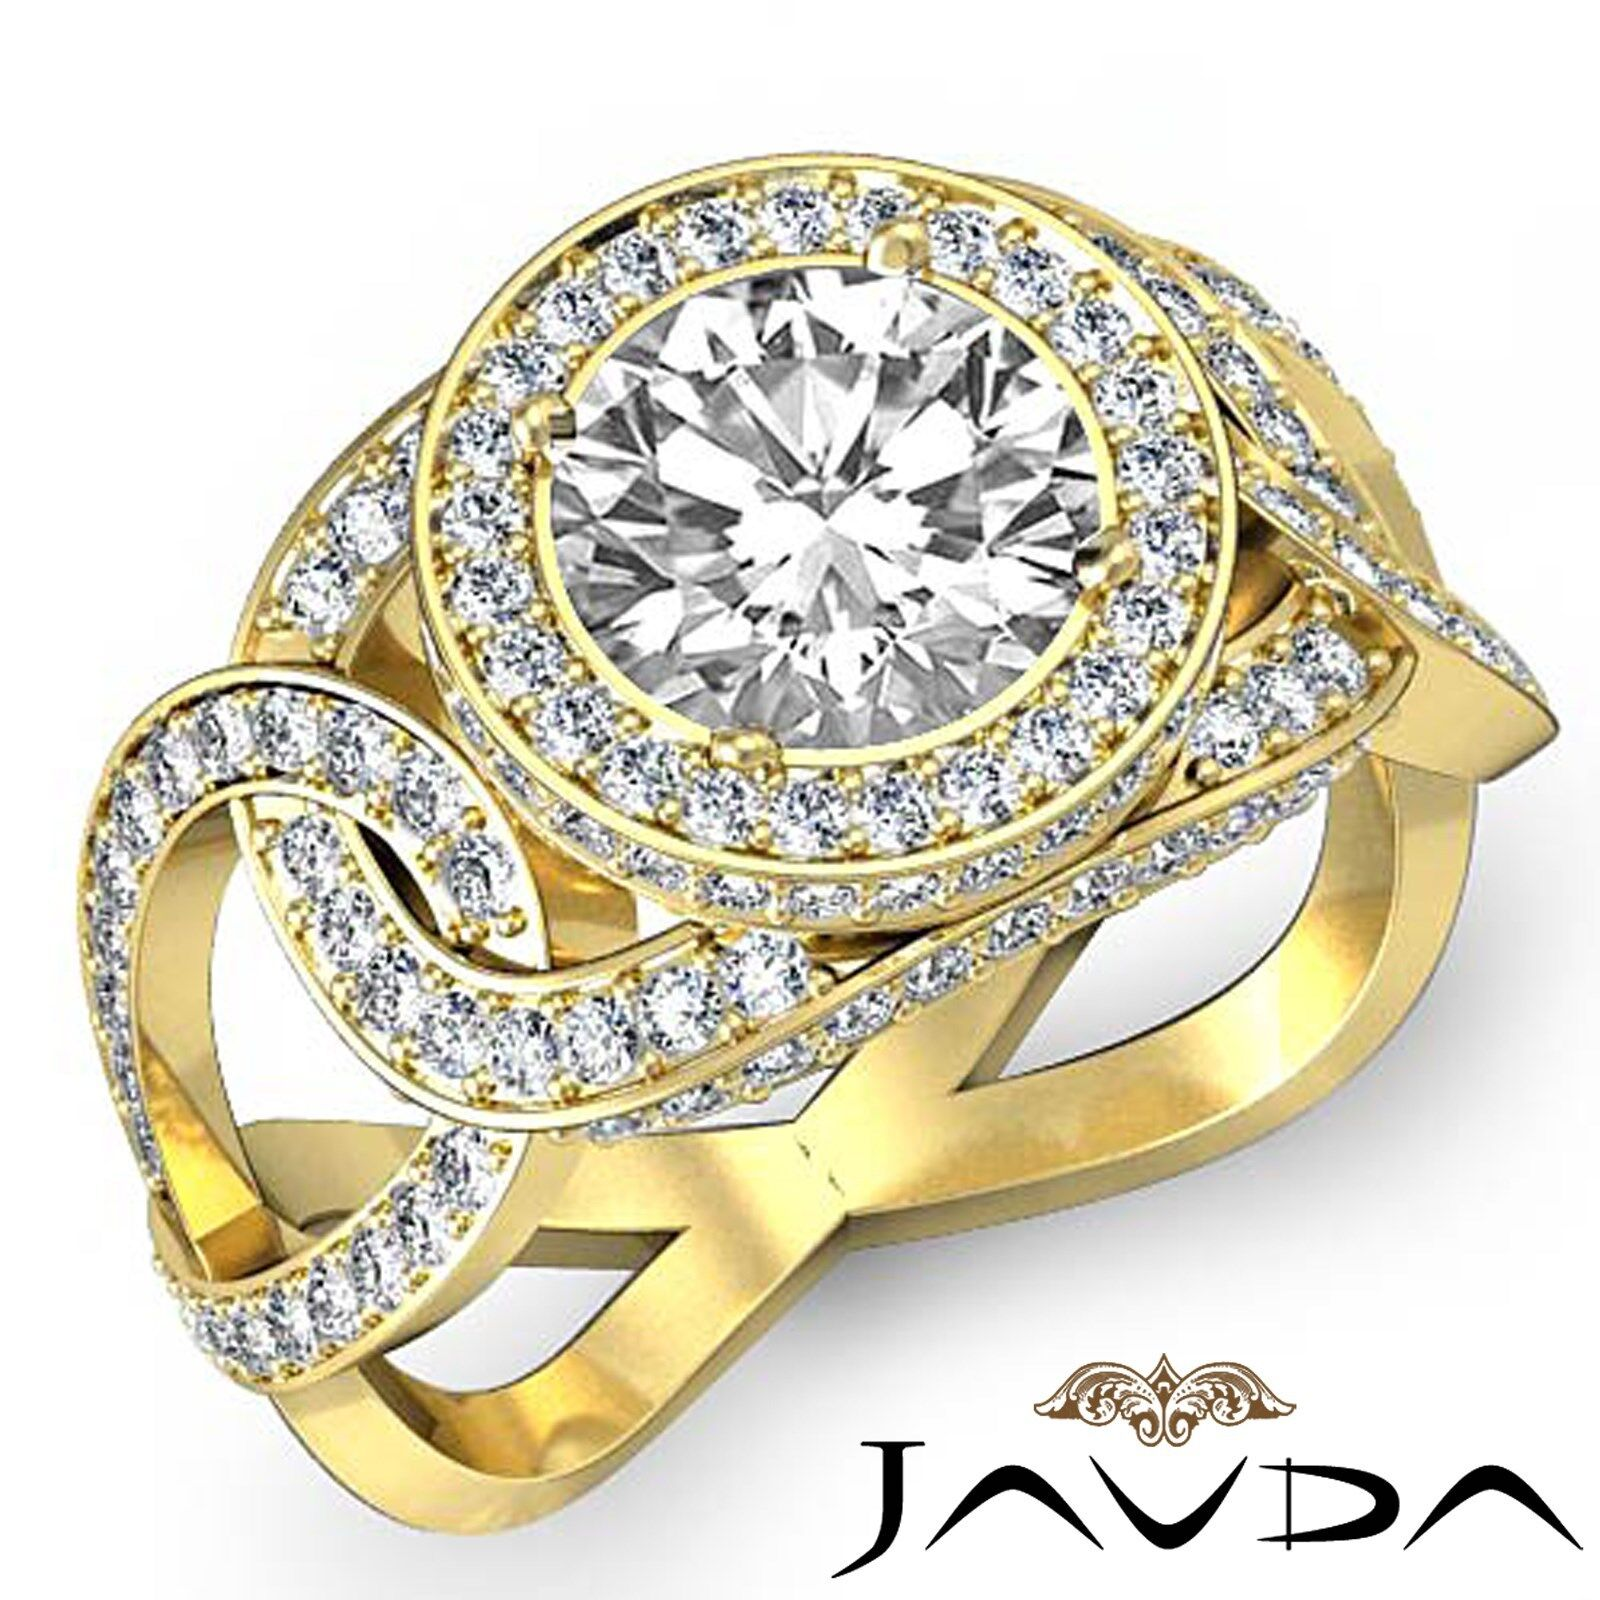 Twisted Halo Round Shape Diamond Engagement Pave Set Ring GIA F Color VS1 2.8Ct